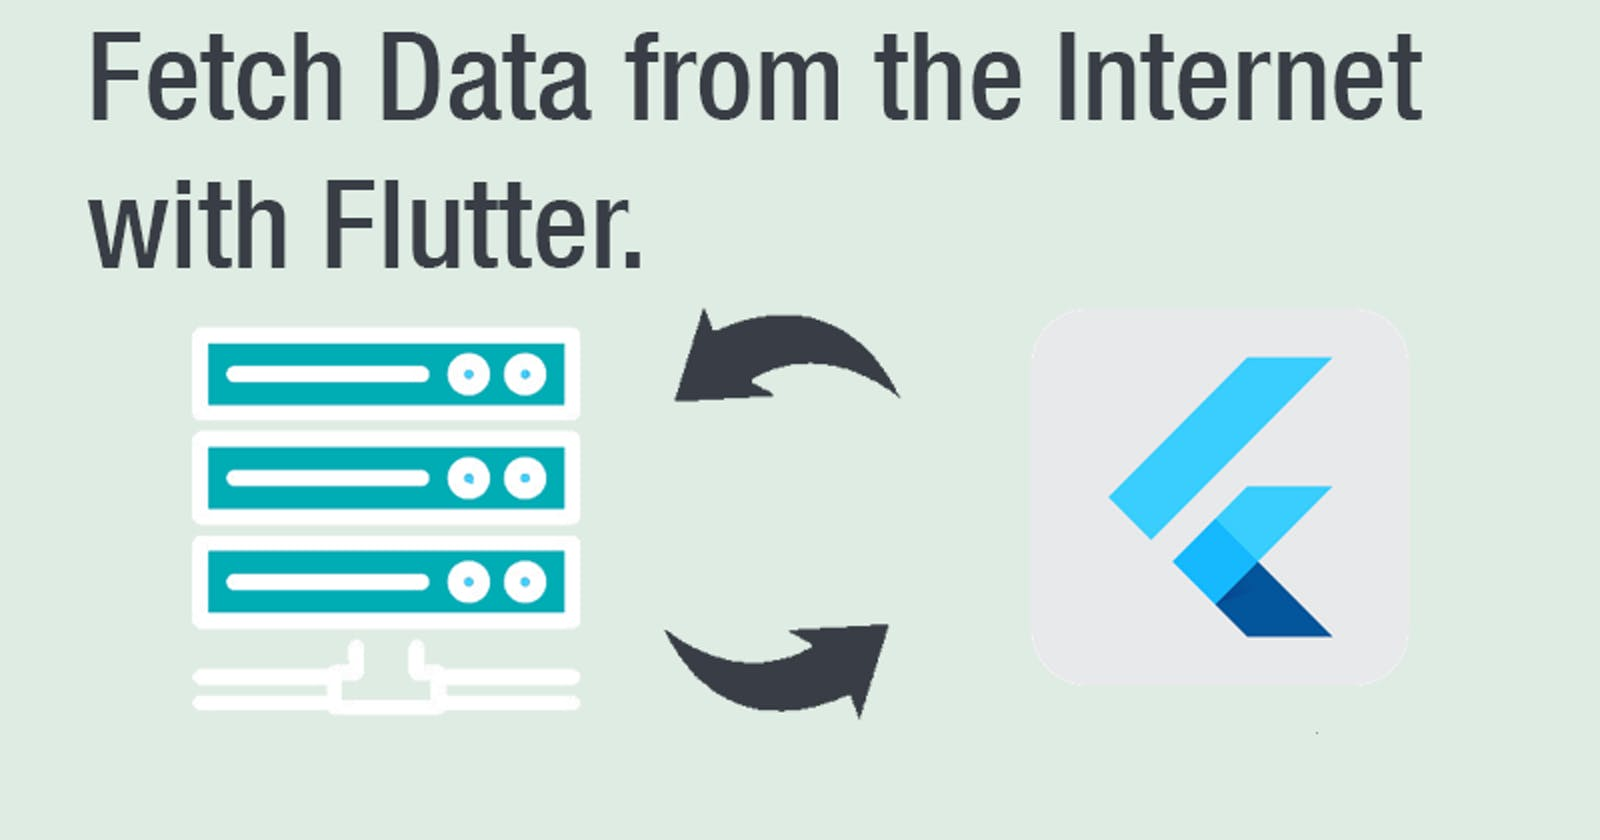 Fetch data from the Internet with Flutter.